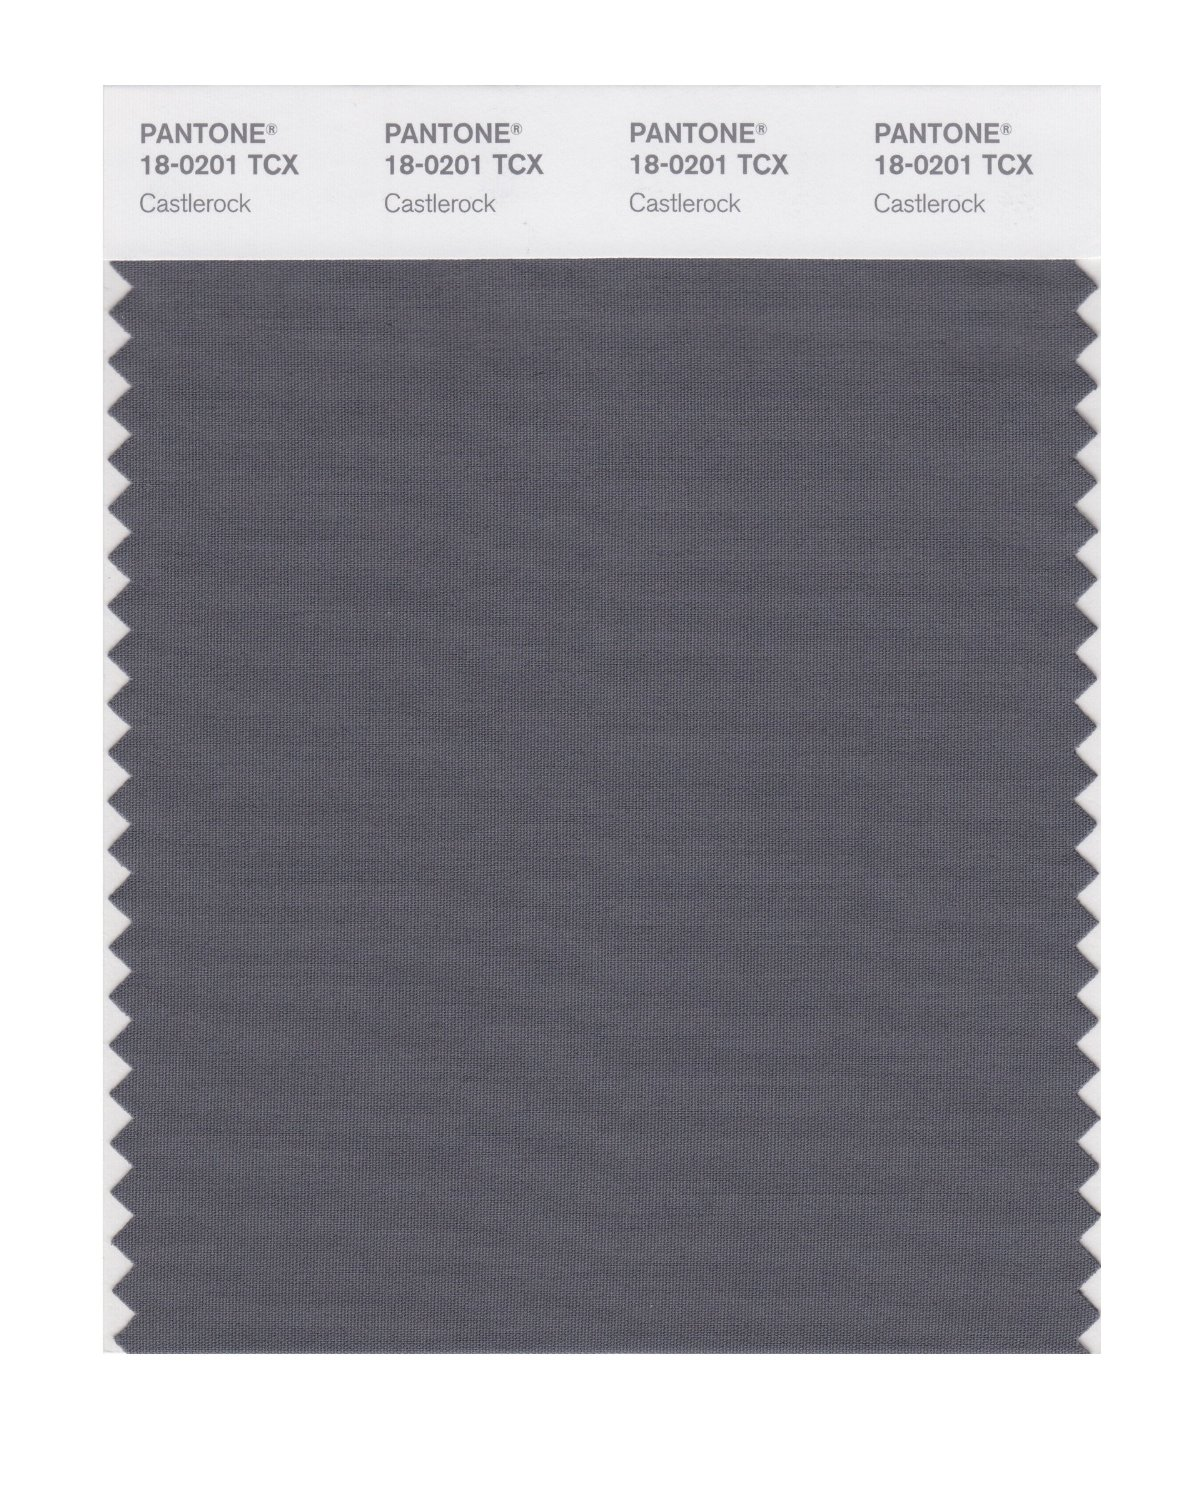 Pantone Smart Swatch 18-0201 Castlerock